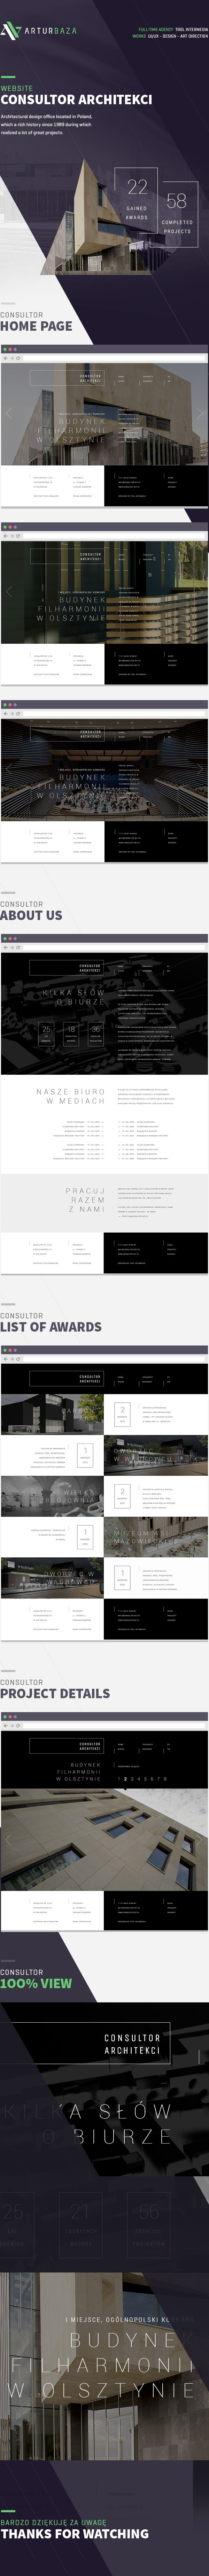 Consultor architects on Behance